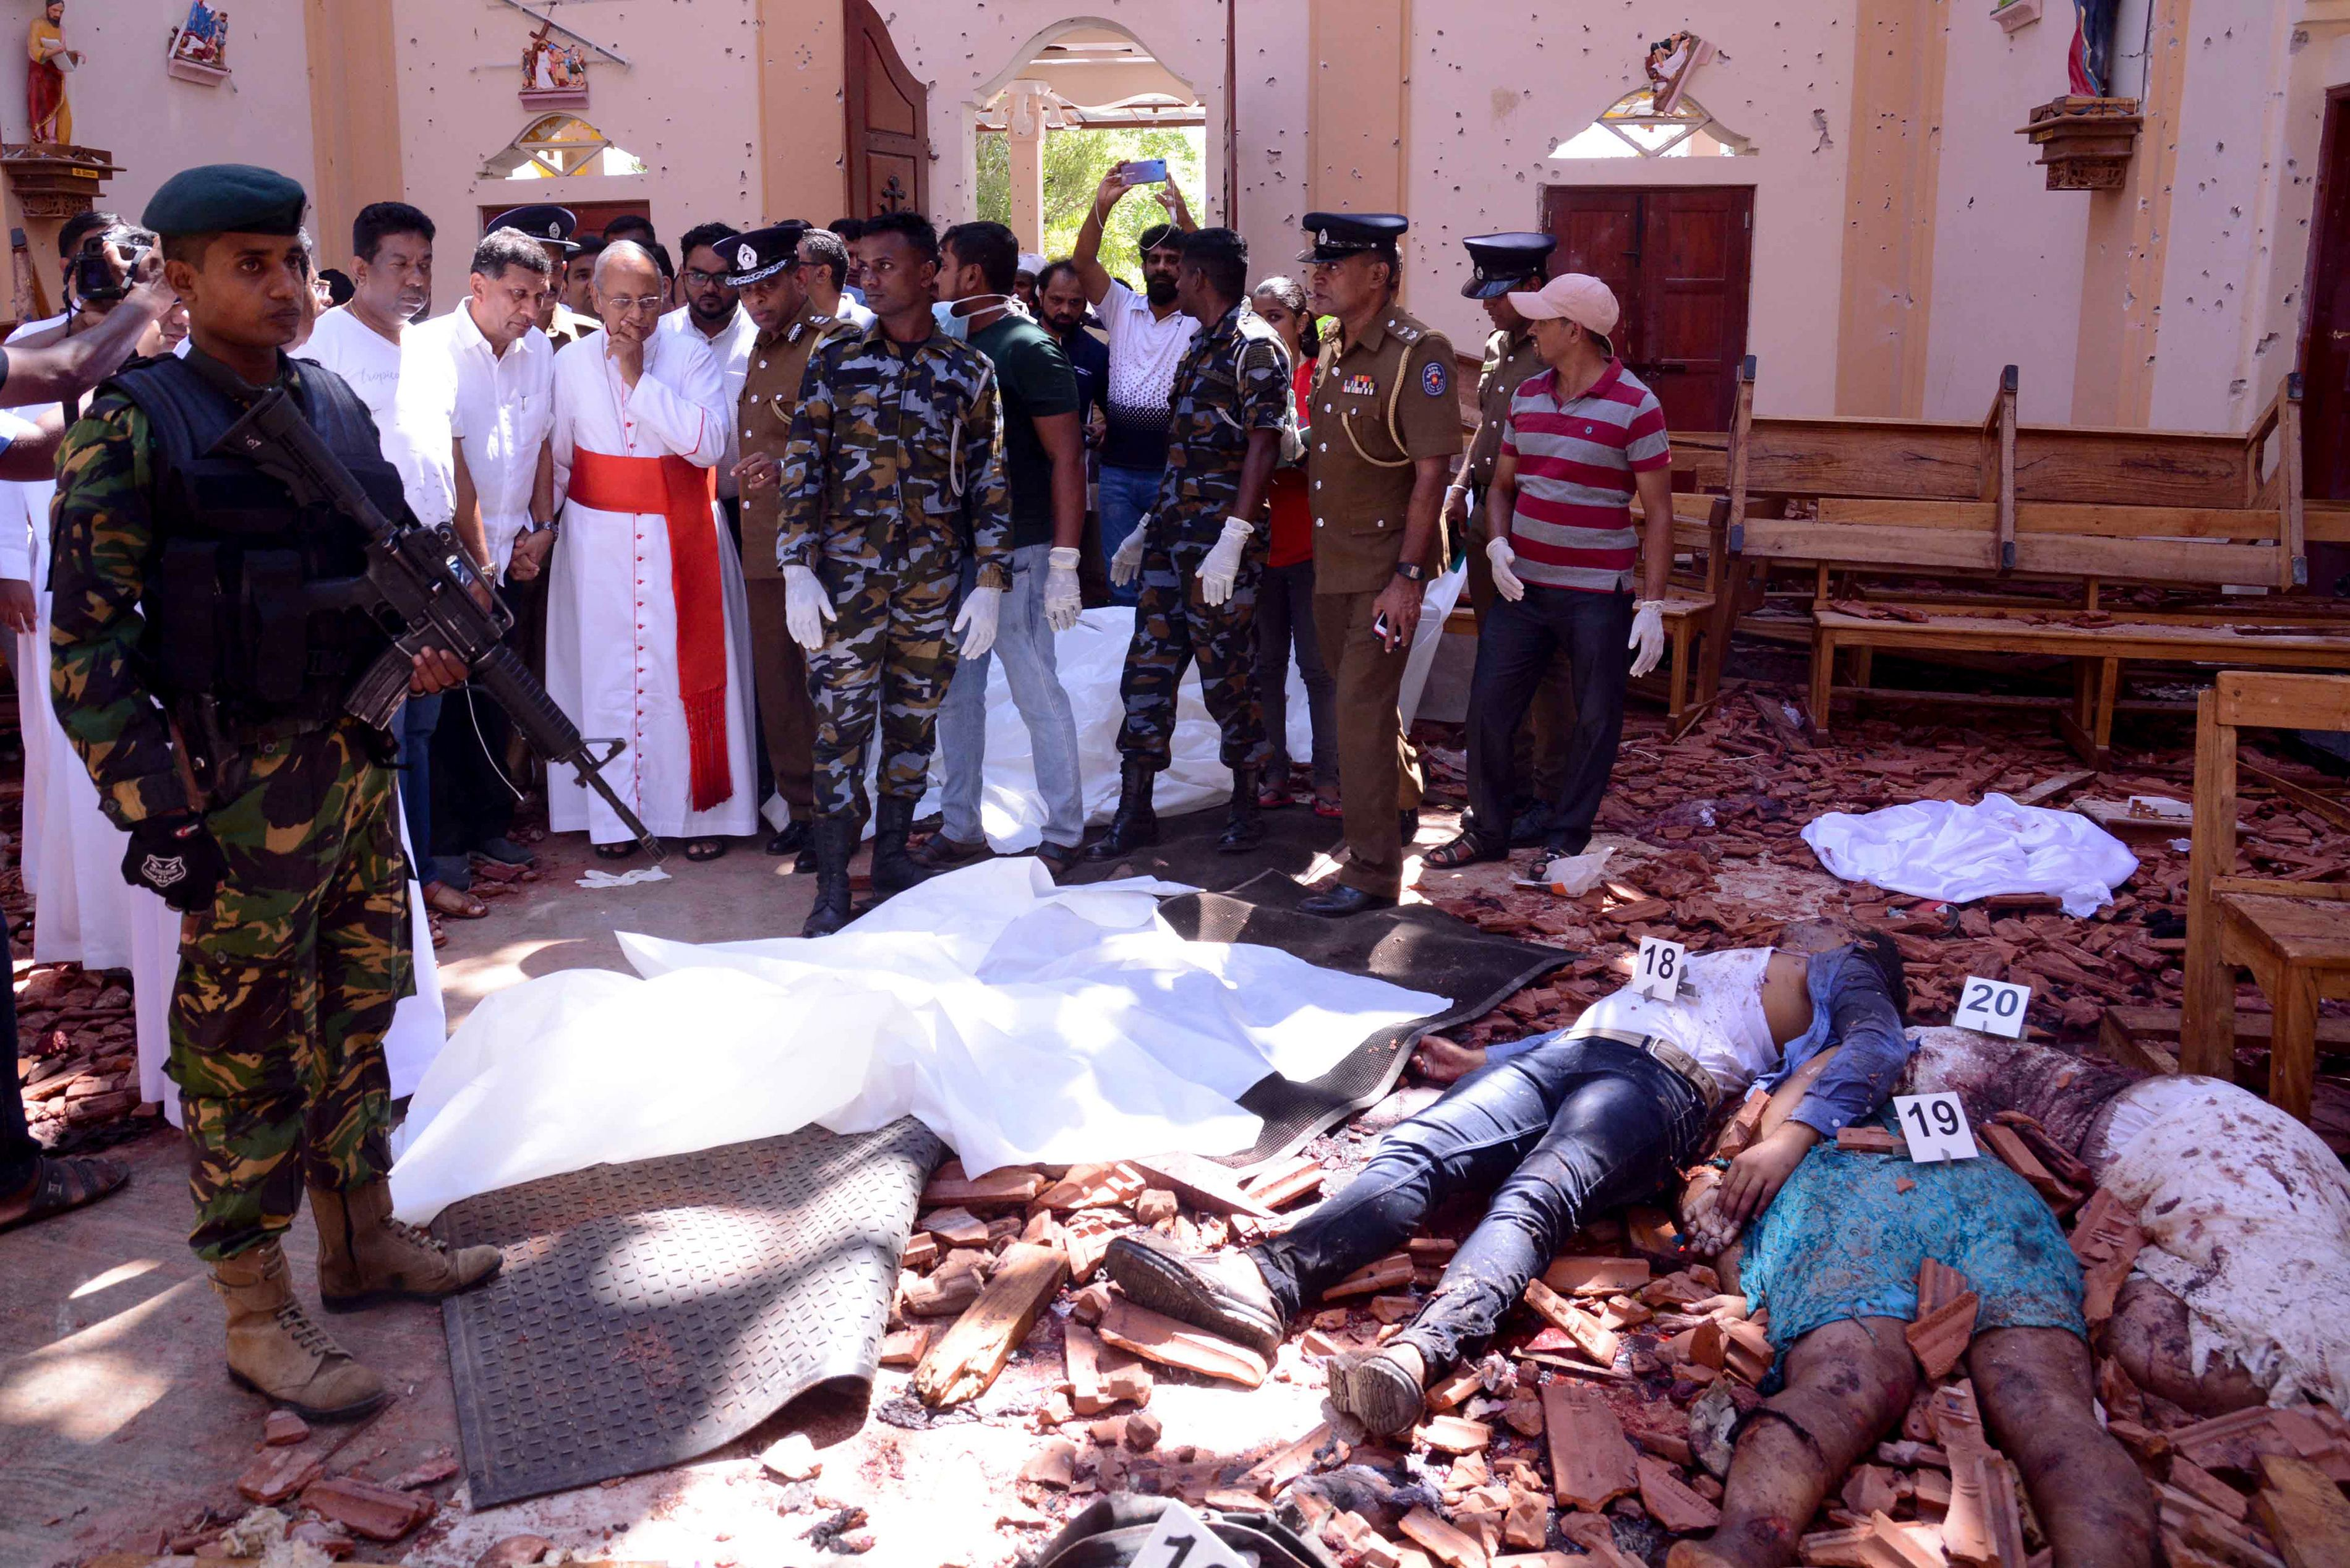 Sri Lanka soldiers and religious members of the parish look on inside the St Sebastian's Church at Katuwapitiya in Negombo on April 21, 2019, following a bomb blast during the Easter service that killed tens of people. (STR/AFP/Getty Images)